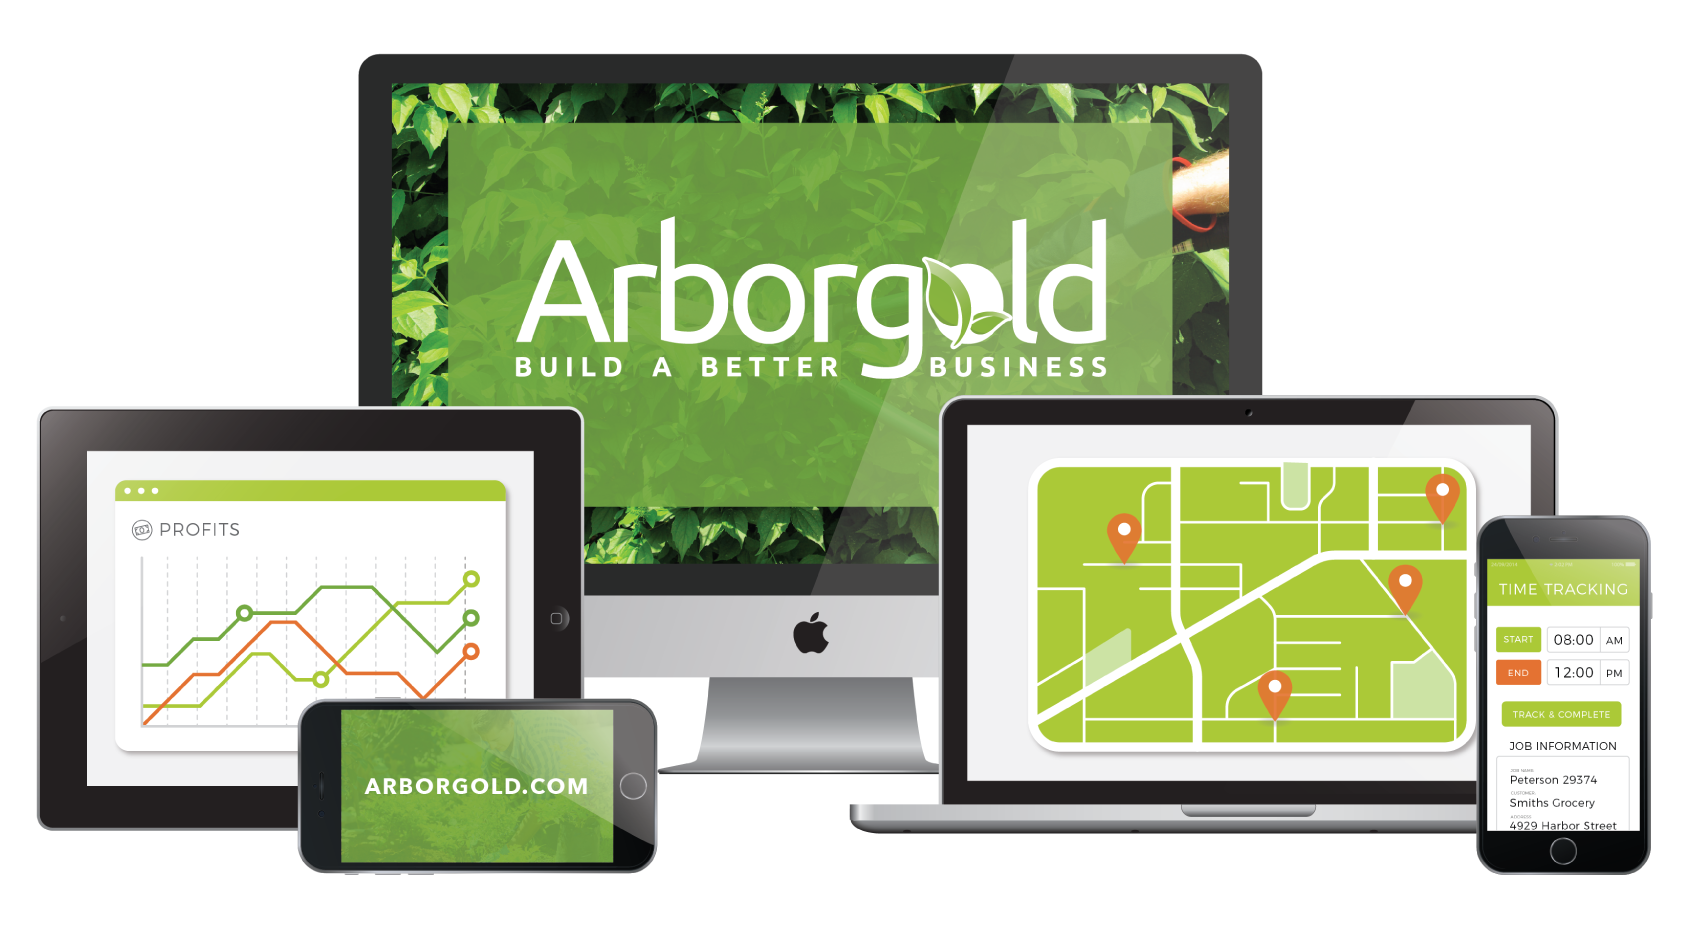 Arborgold software works on all devices (phone, tablet, and desktop)